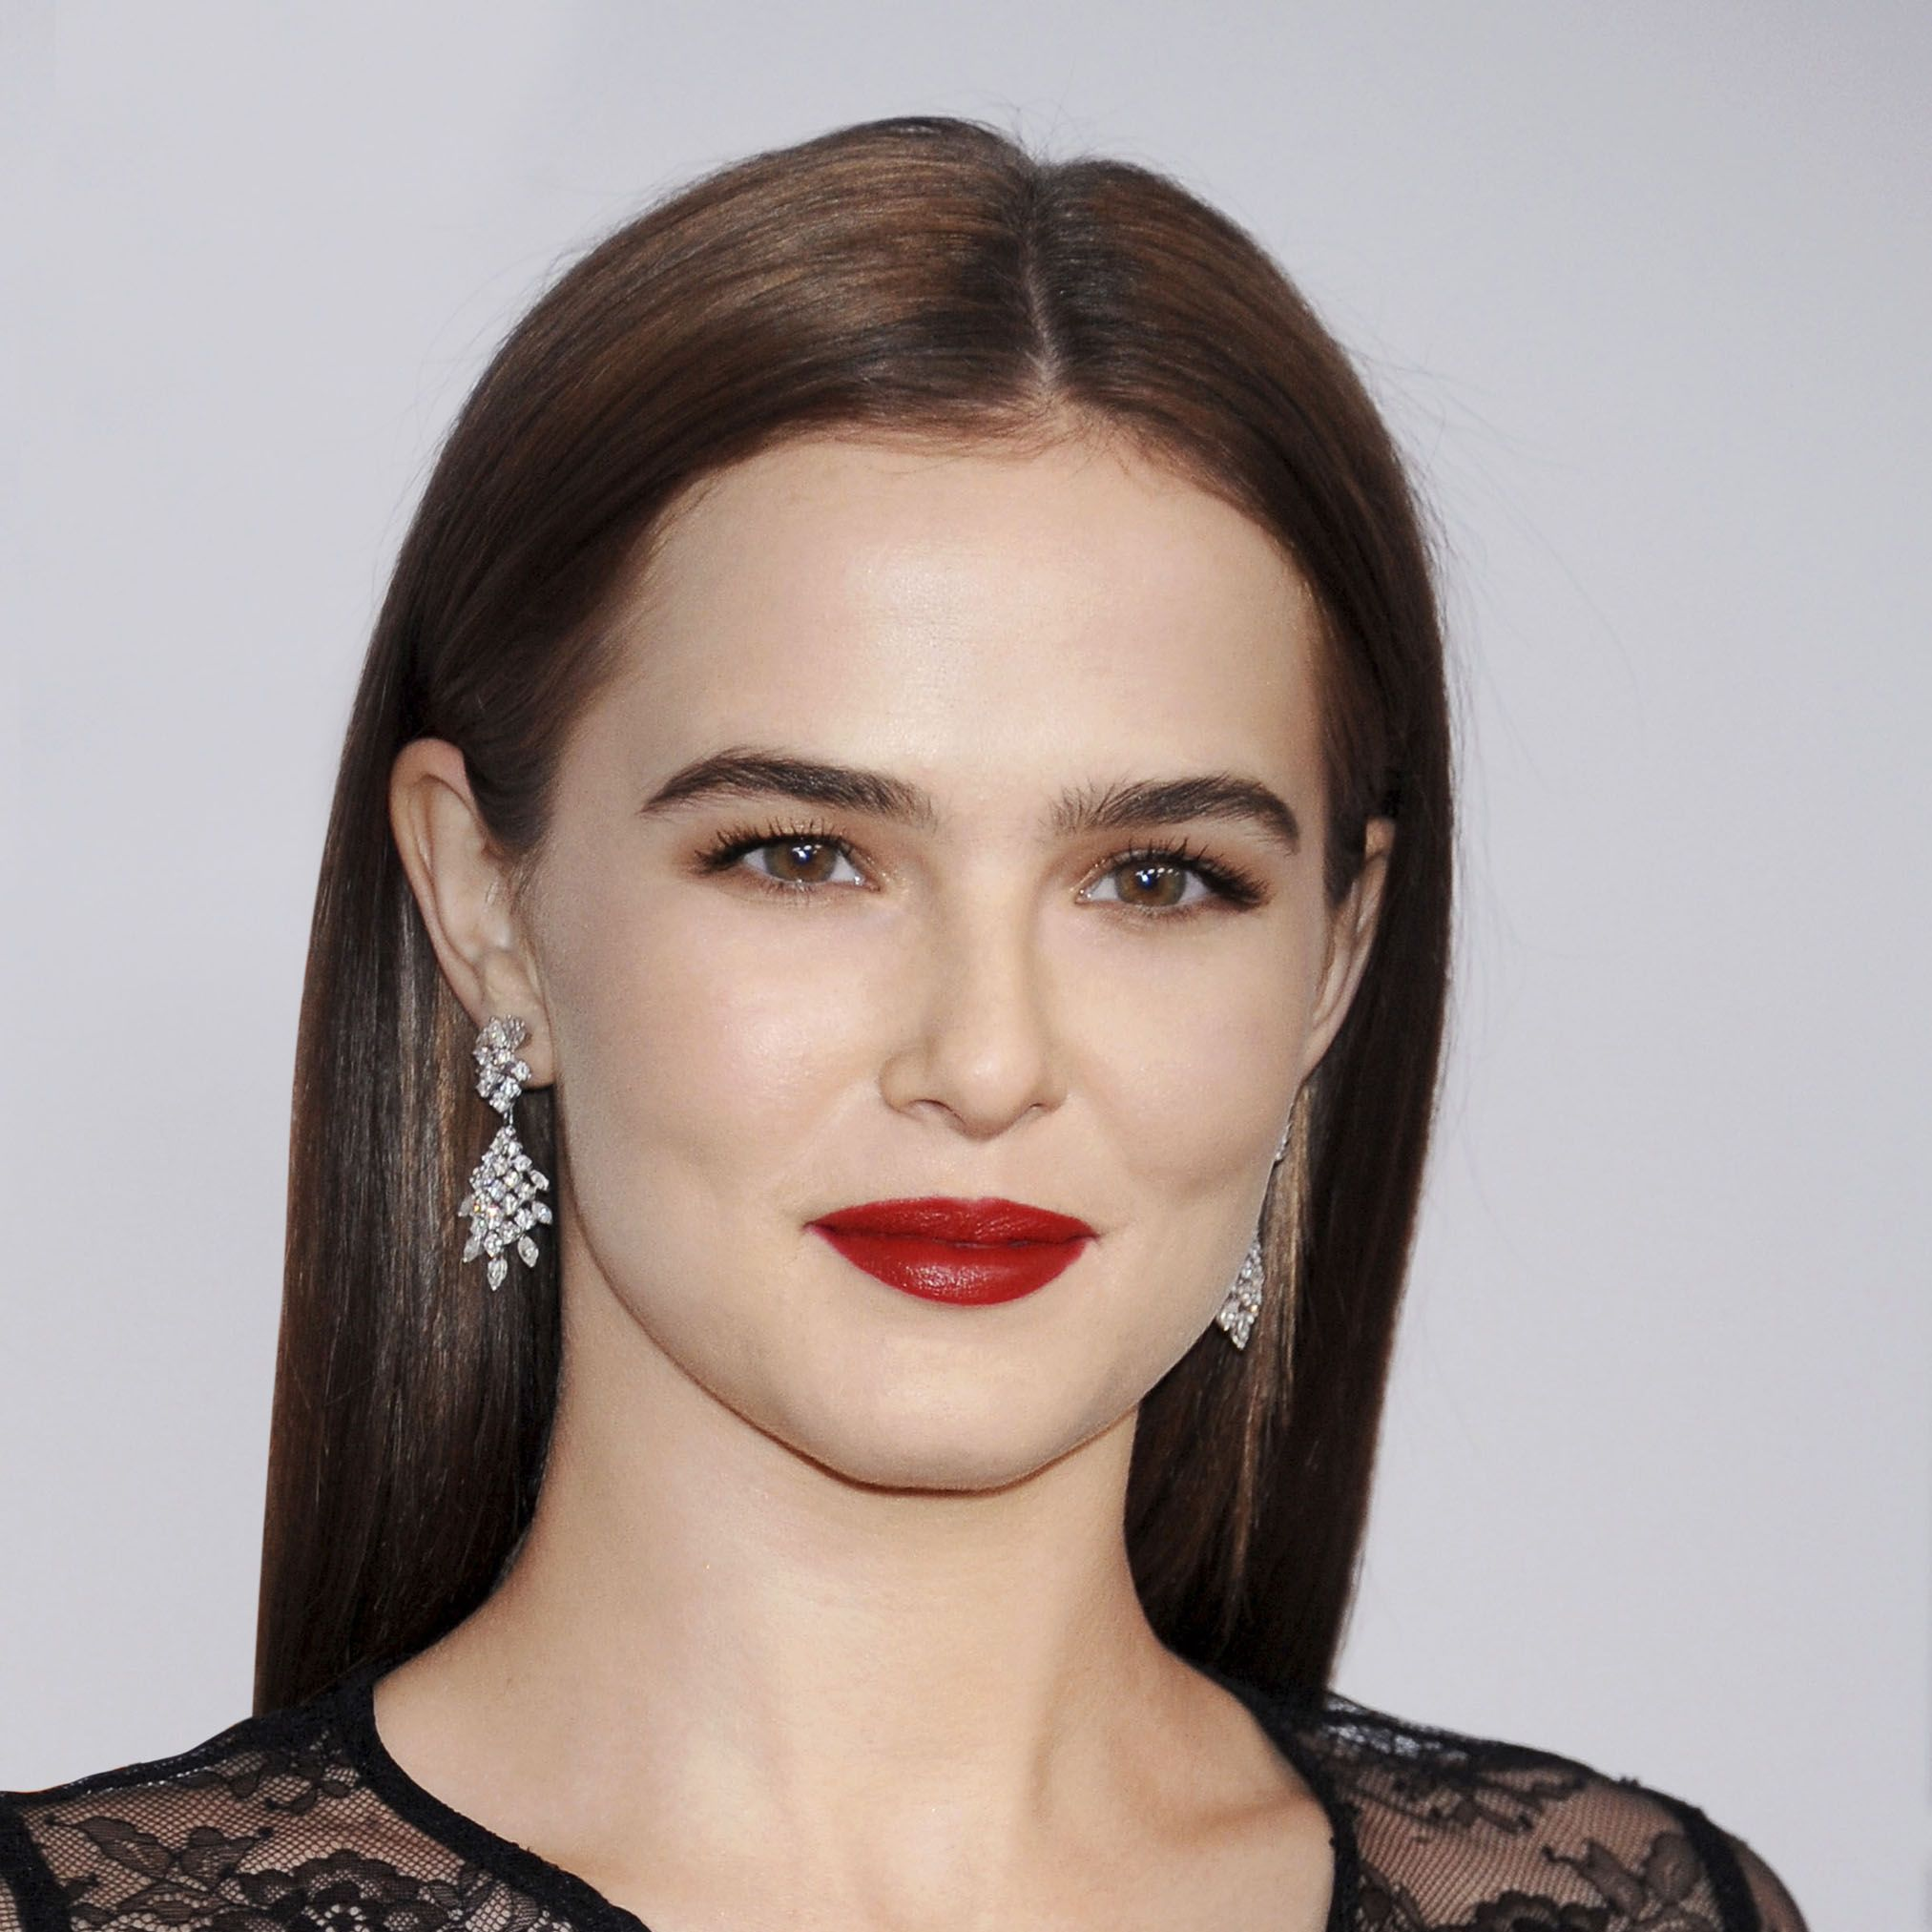 "<p>""I think the Hepburn lip is about looking amazing but approachable,"" says celebrity makeup artist <a href=""https://www.instagram.com/andremakeup/?hl=en"" target=""_blank"">Andre Sarmiento</a> who did Zoey's look here. ""It's not the the sharp matte statement lip of seasons past. It's perfect but soft&#x3B; rich but accessible. There's depth to the color and the texture is more satin. That's what makes it more modern for today.""</p>"